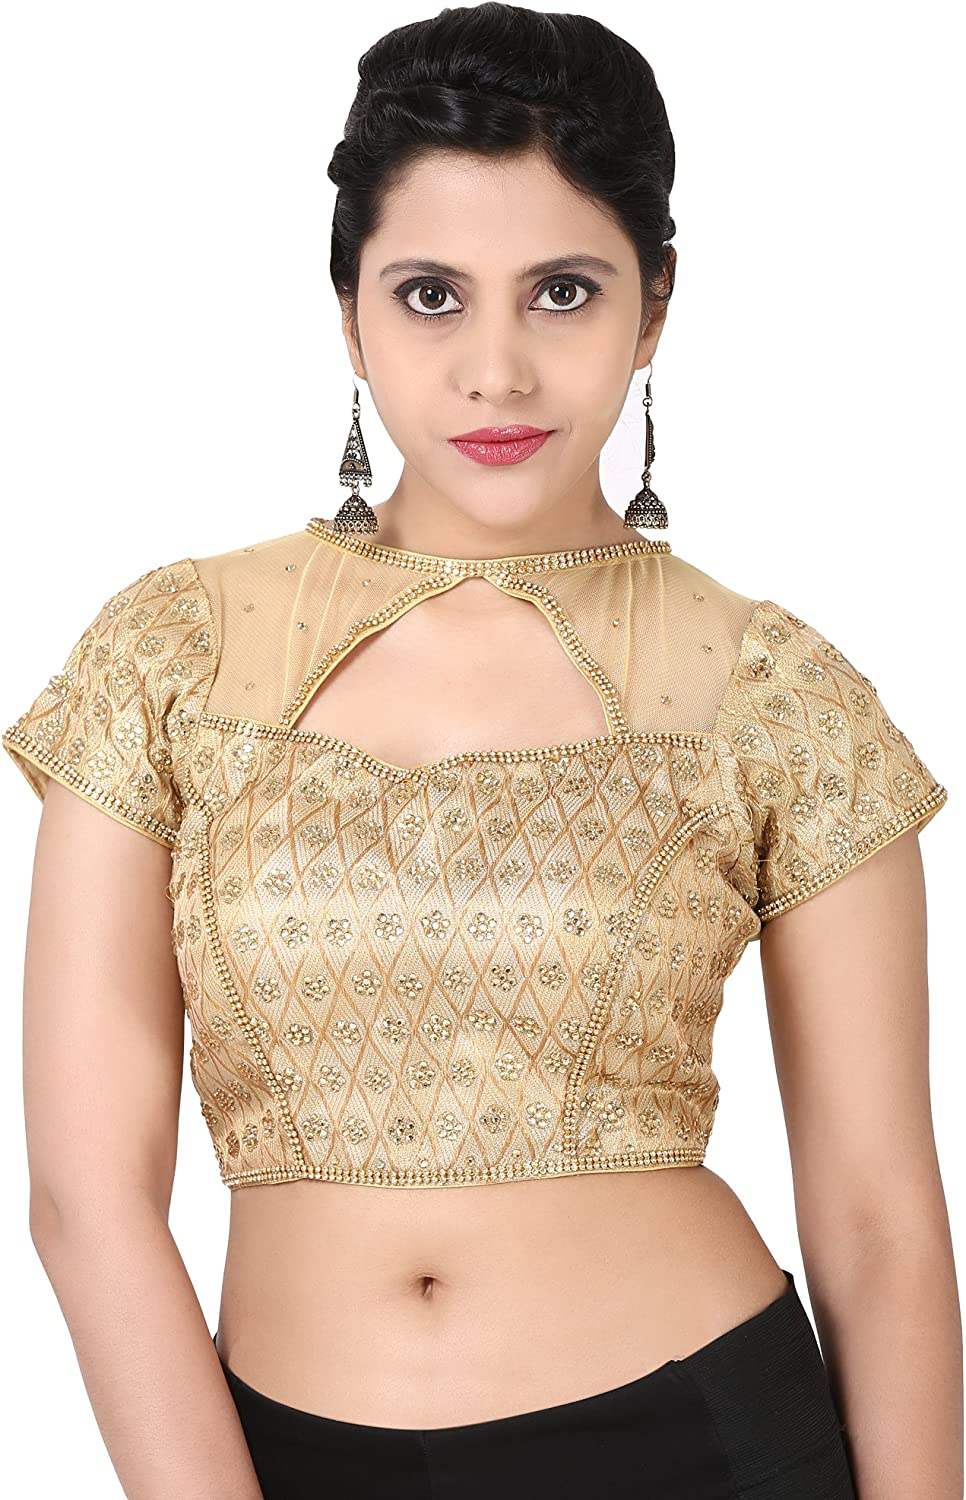 Ethnic Designer Ready made saree blouse Top Choli Stone Work Party Wear Ceremony Women